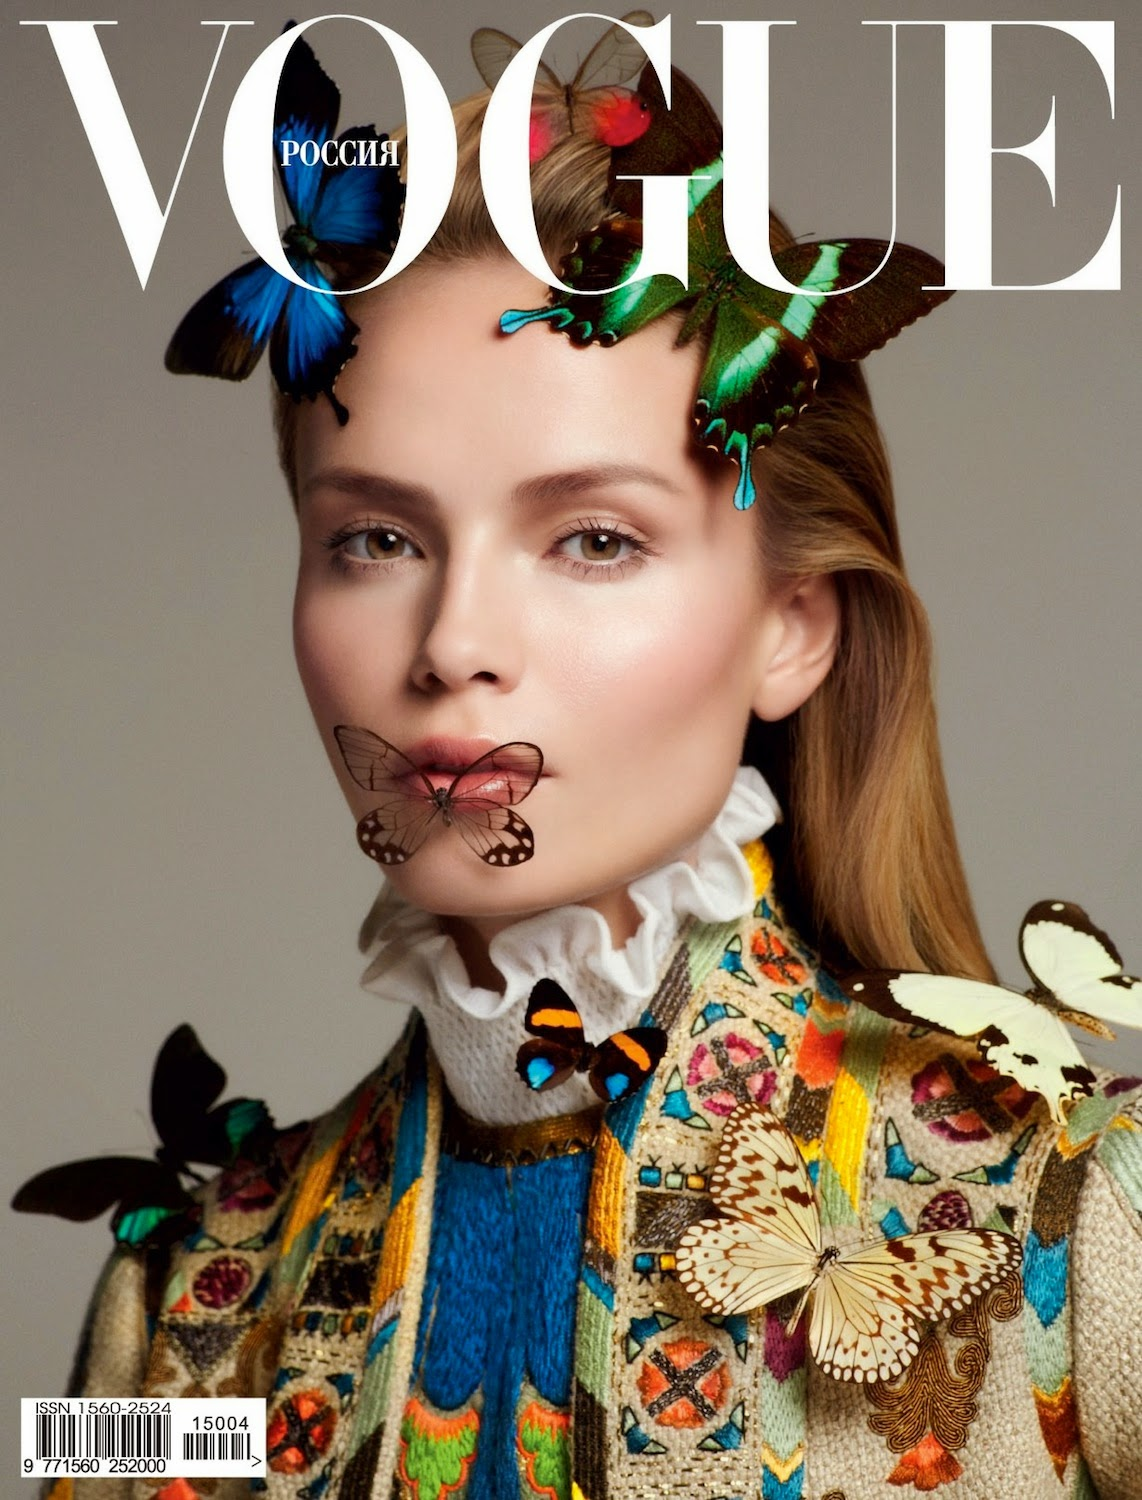 Natasha-Poly-Covers-Vogue-Russia